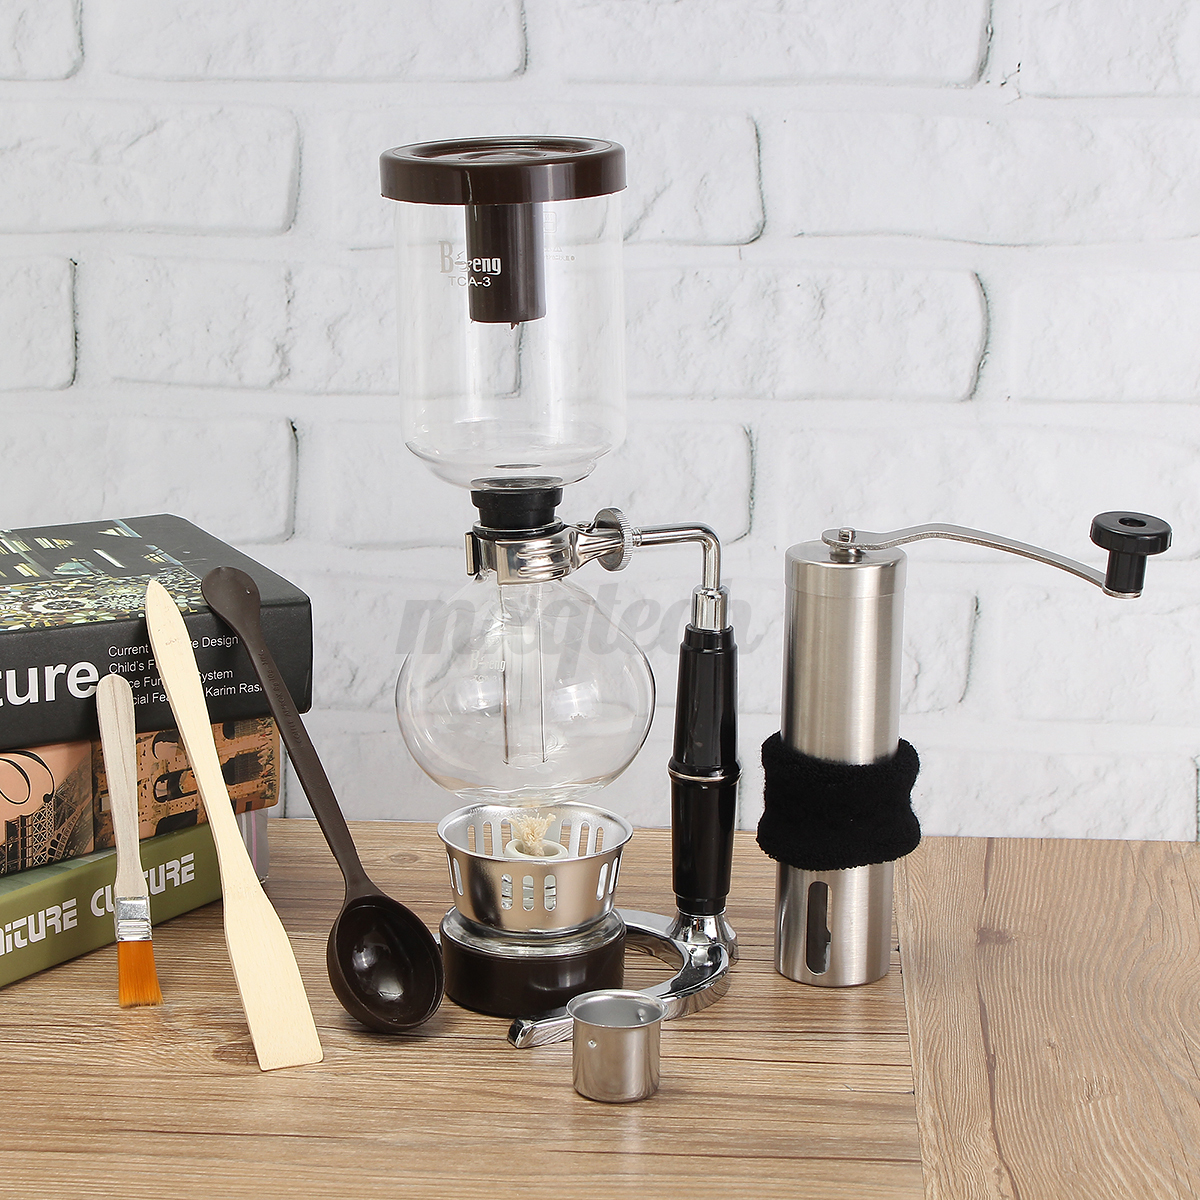 French Press Coffee Maker Manual : French Press Filters Coffee Maker Siphon Pot Stainless Steel Bean Grinder Manual eBay